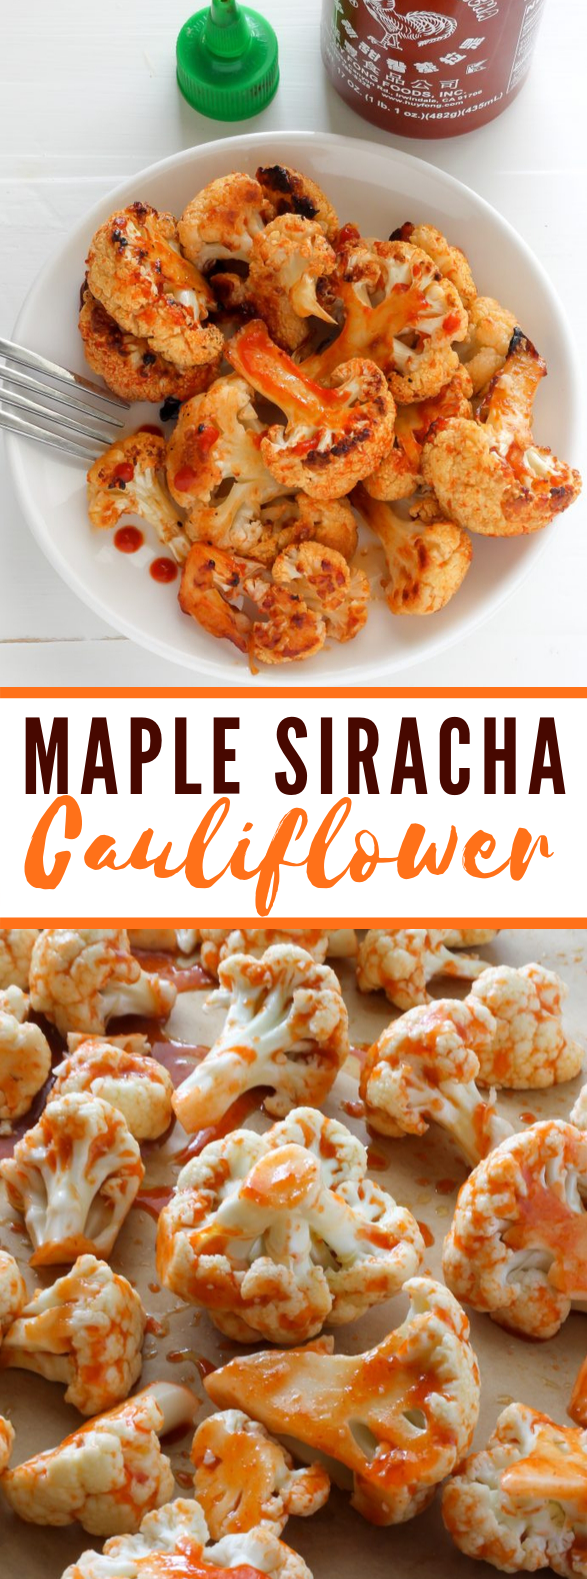 Maple Sriracha Roasted Cauliflower #vegetarian #veggies #vegetables #cauliflower #lunch